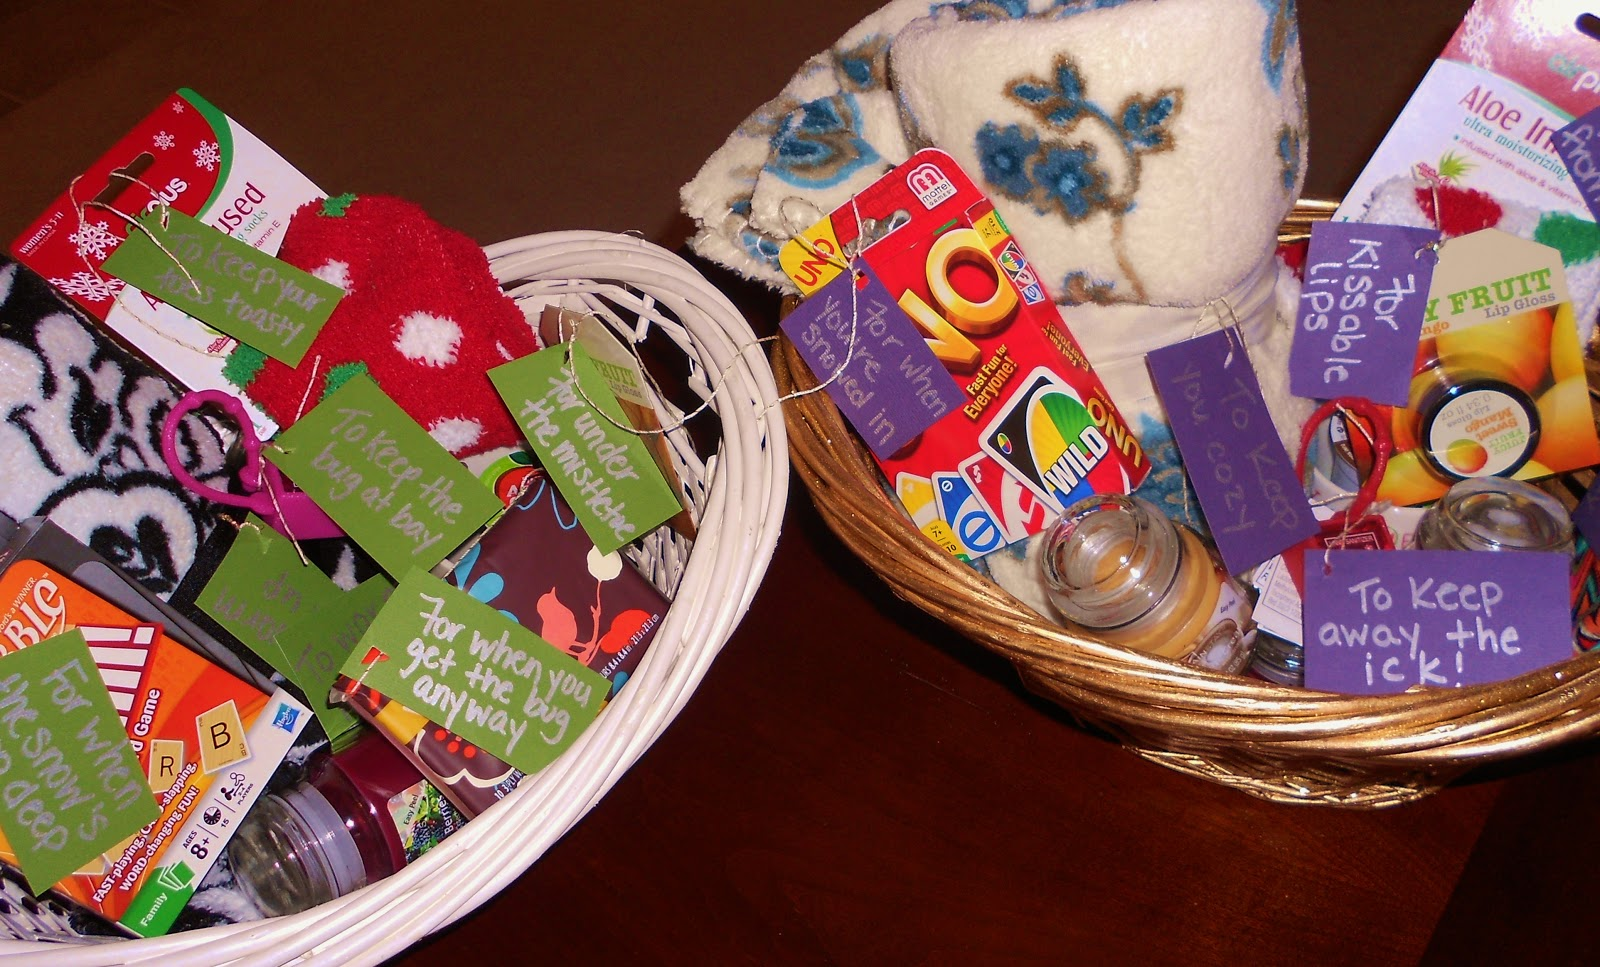 Winter Survival Kit Gift Baskets.   & Hairdresser In The Kitchen~**: Winter Survival Kit Gift Baskets